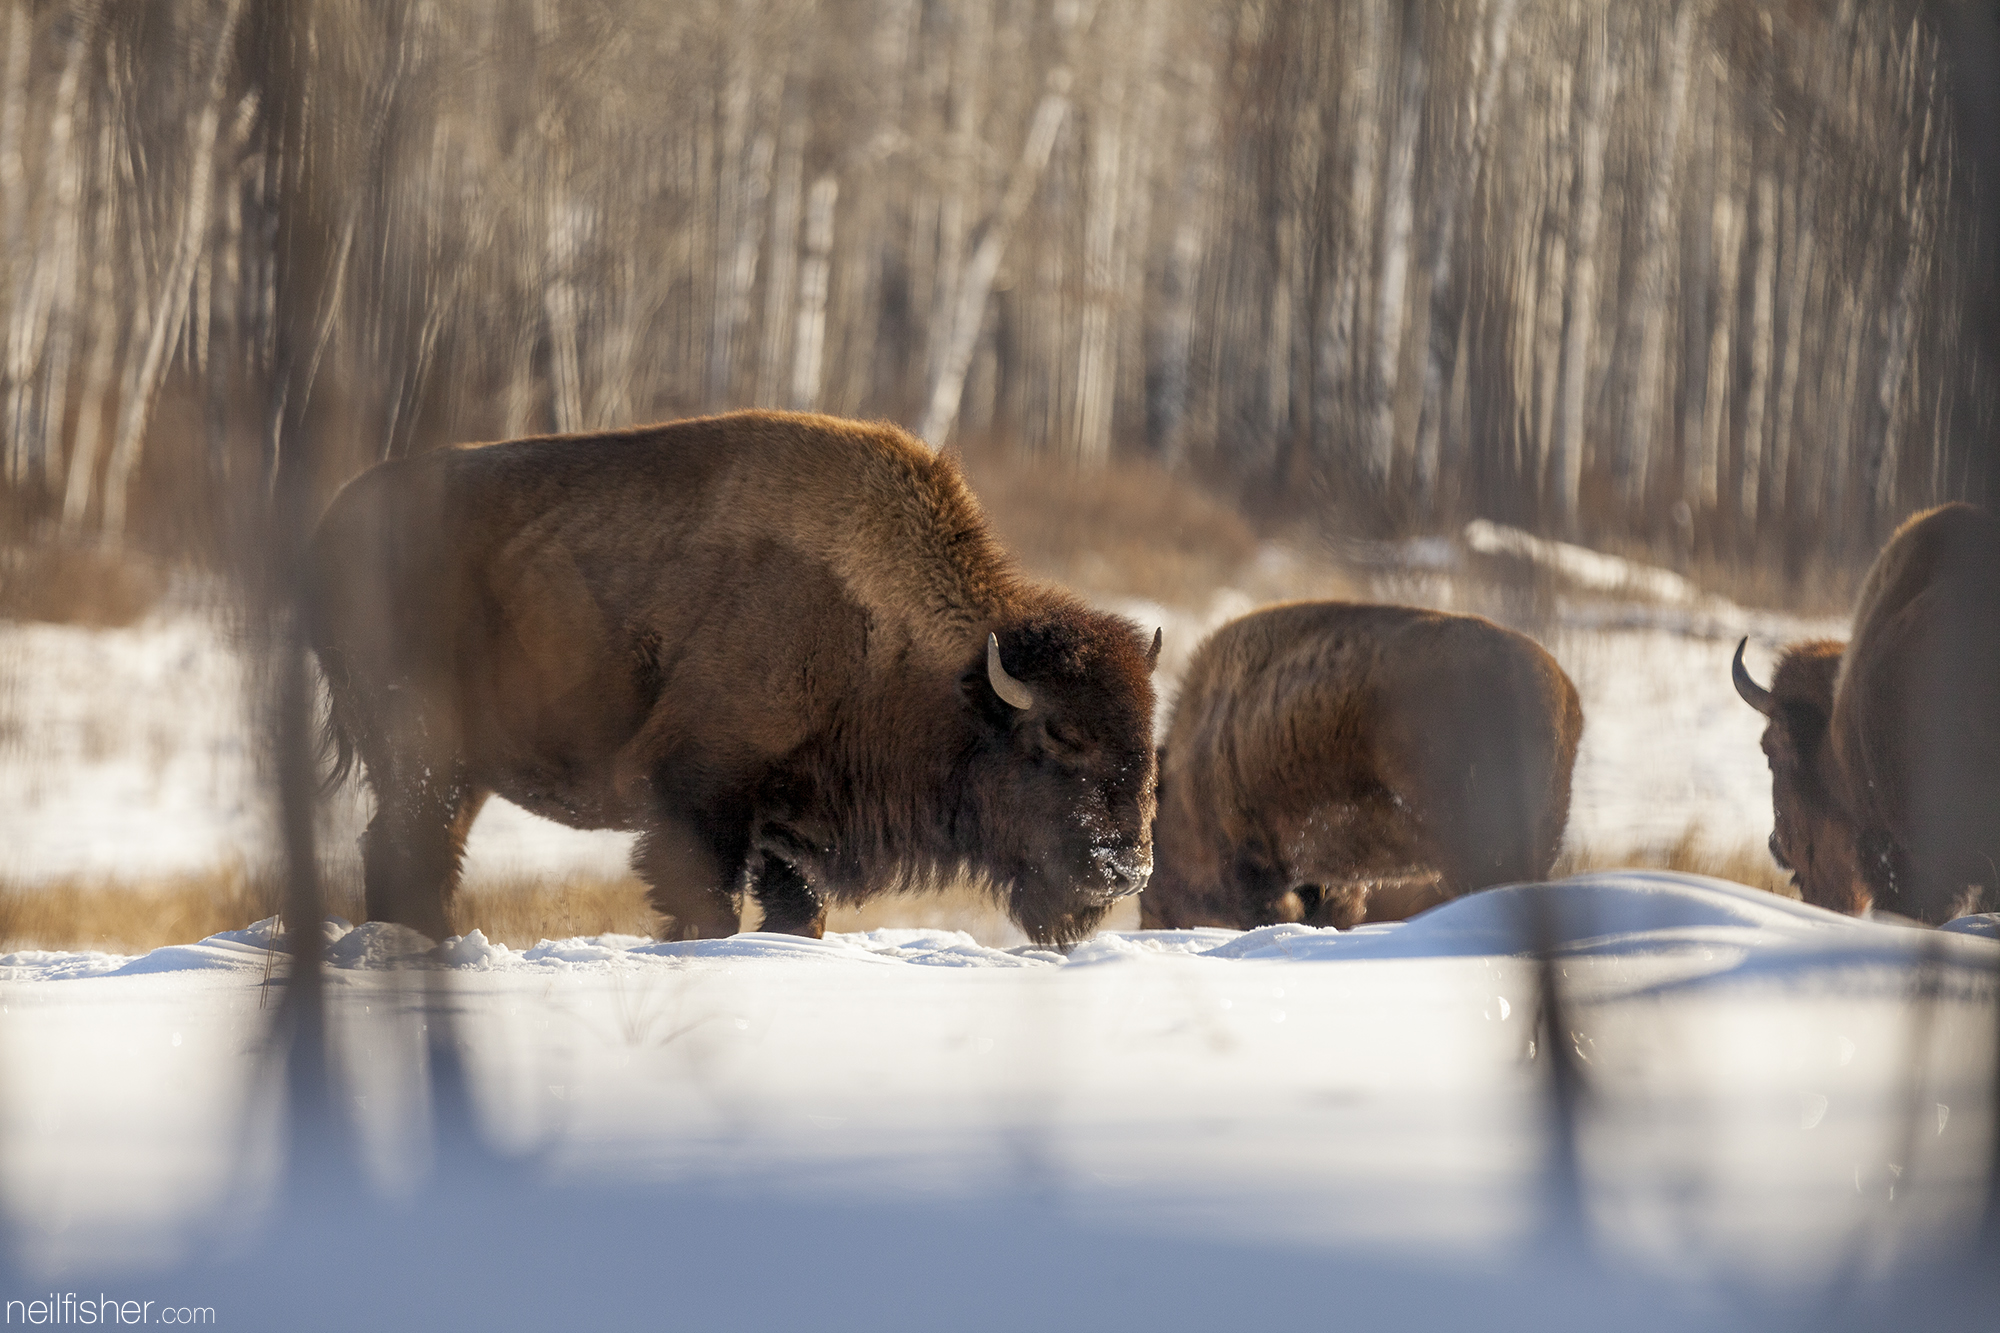 20150112 - PANP Bison Tree Framed - NeilFisher.jpg